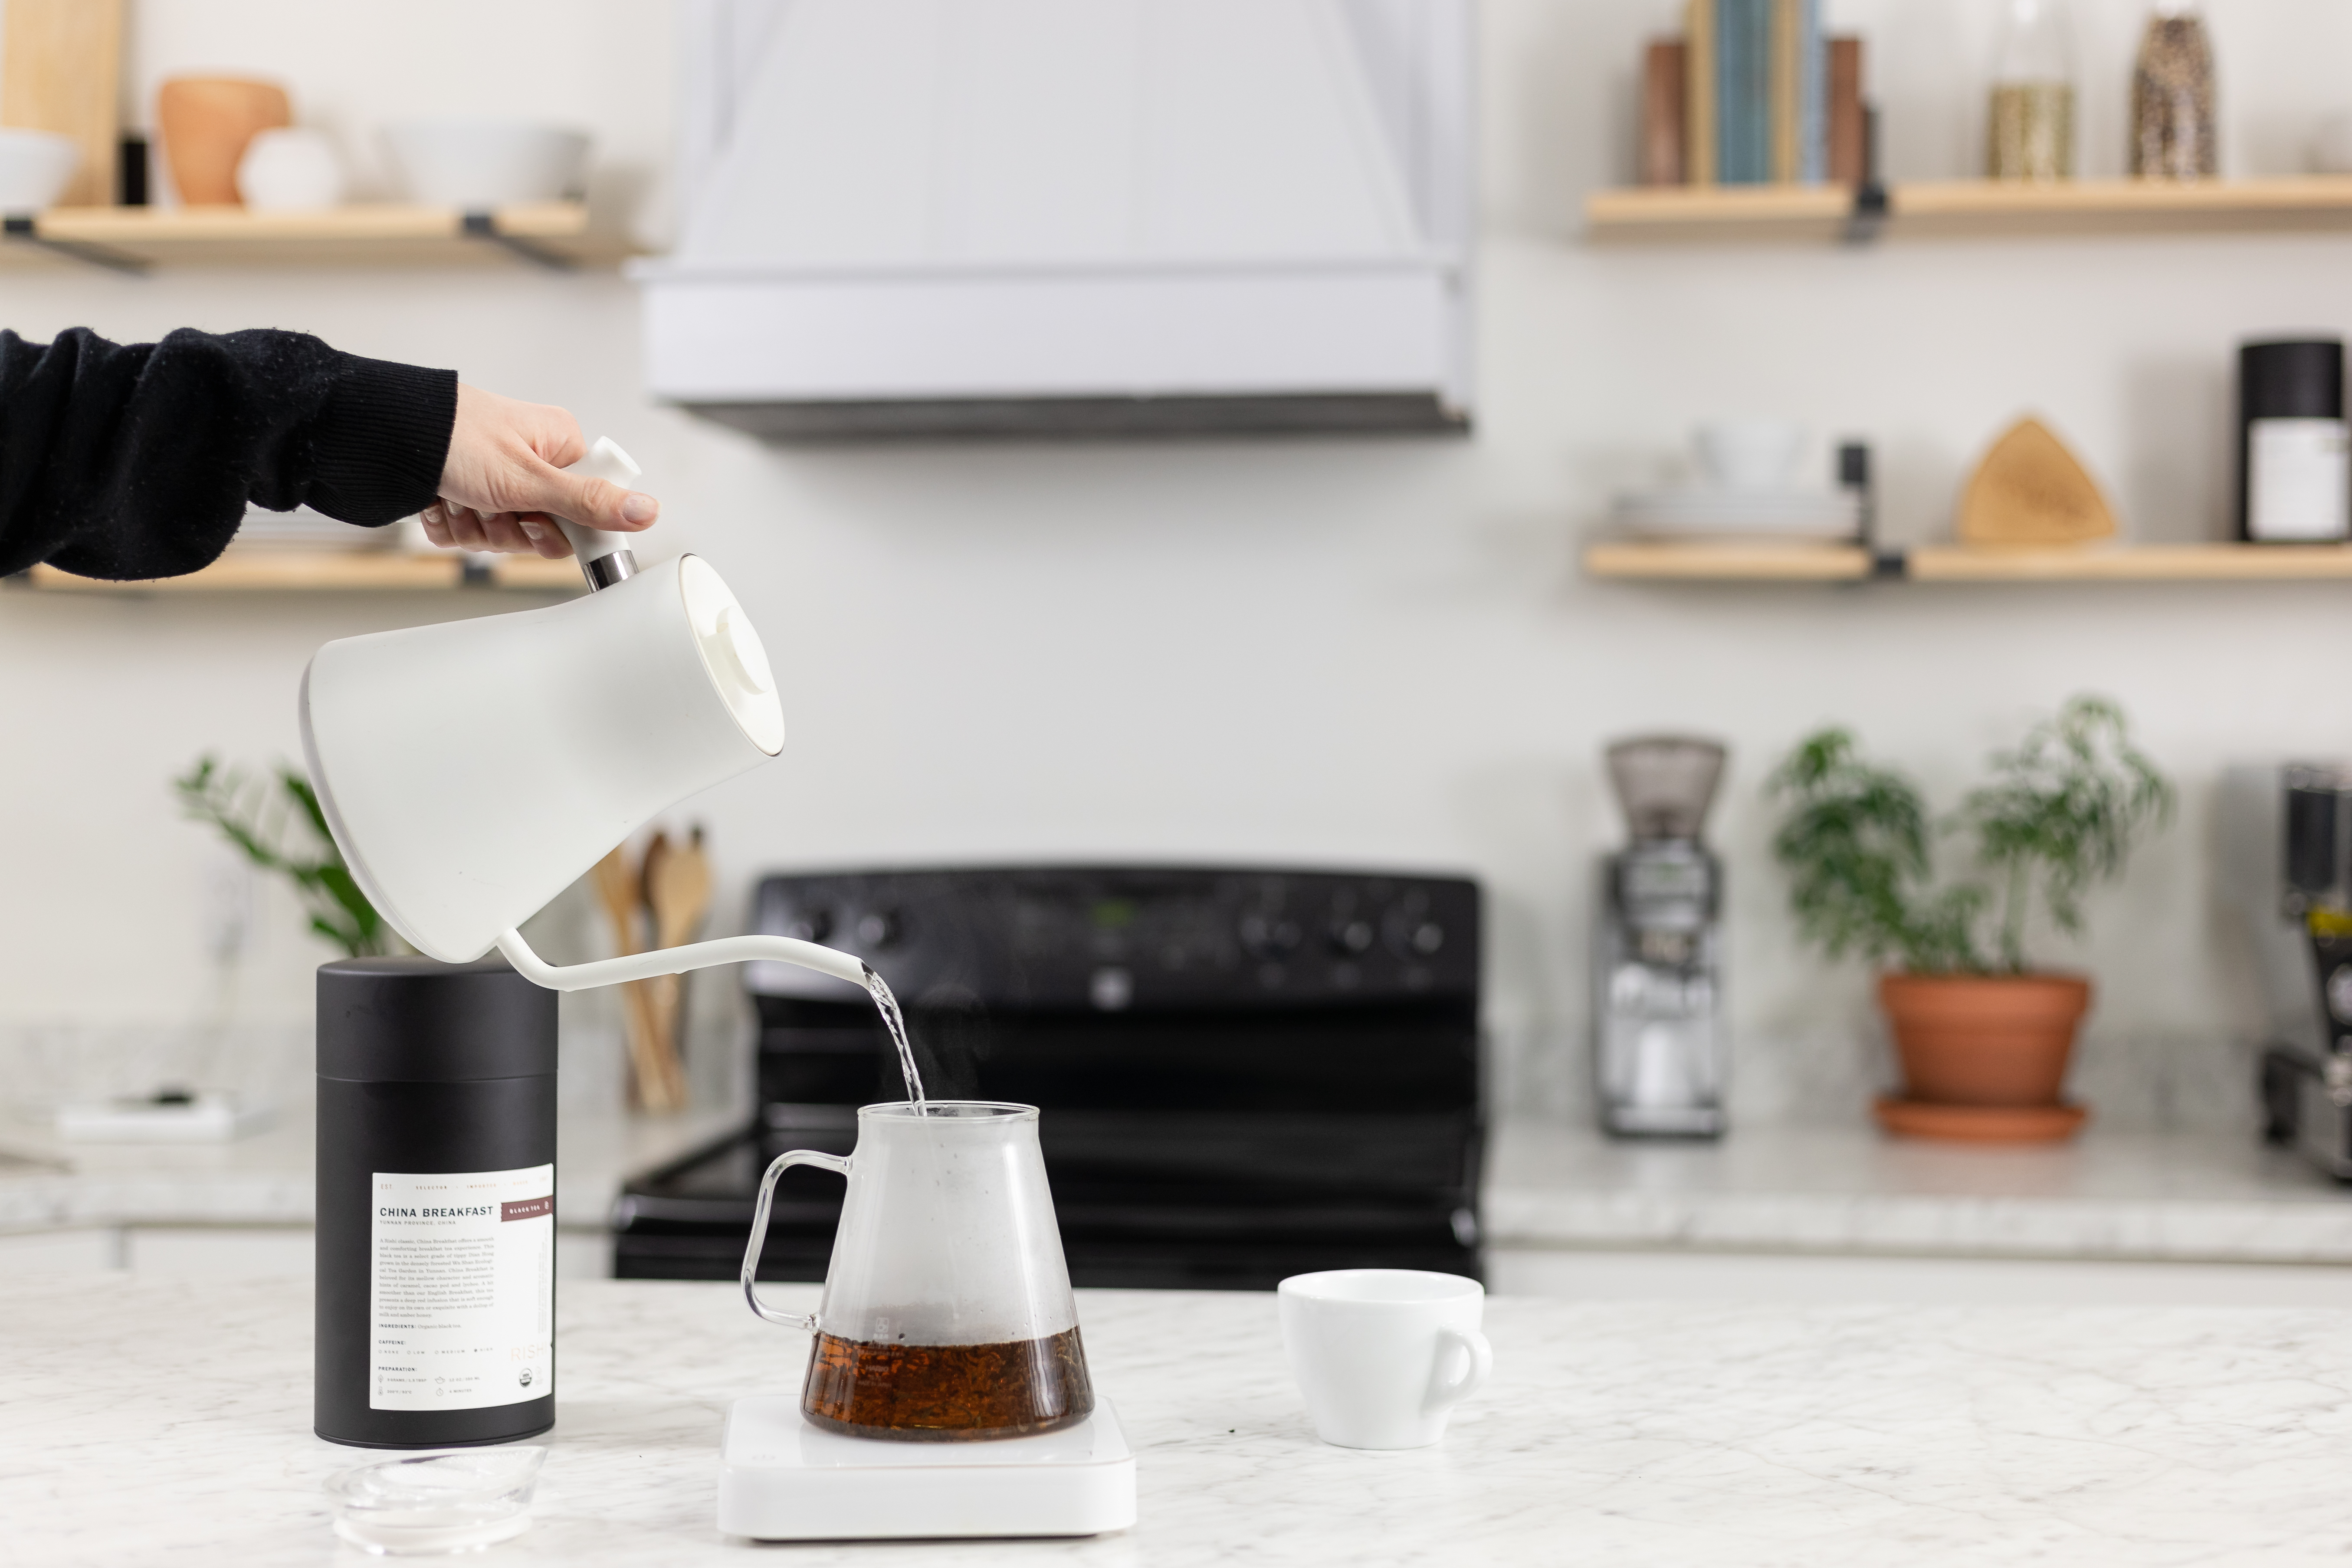 White Stagg EKG kettle pouring water into Hario Clear Teapot